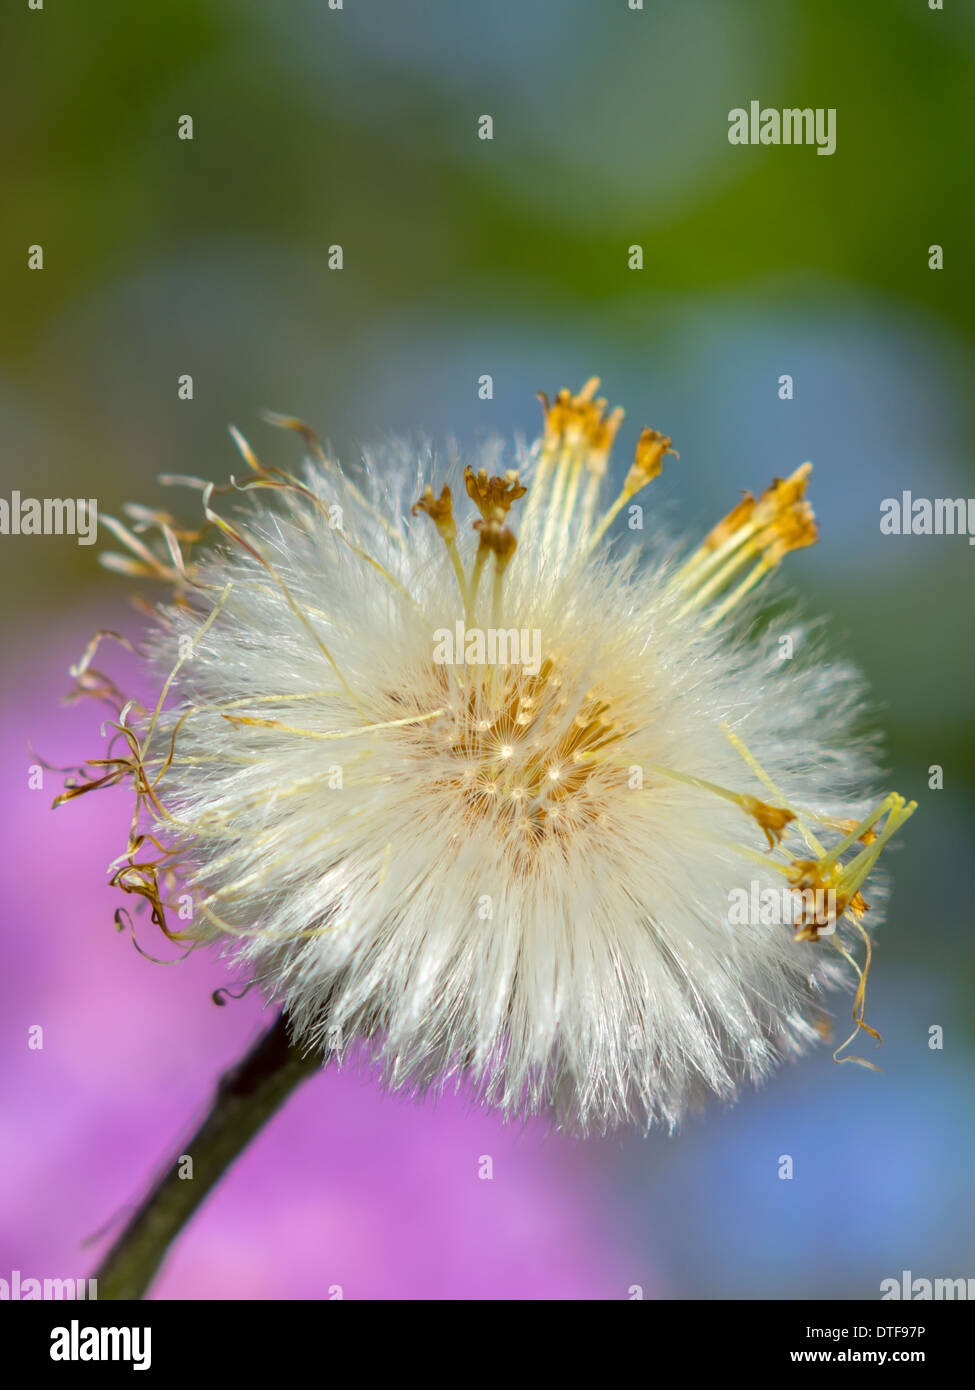 Dandelion seed On A Colorful Blurred Background - Stock Image